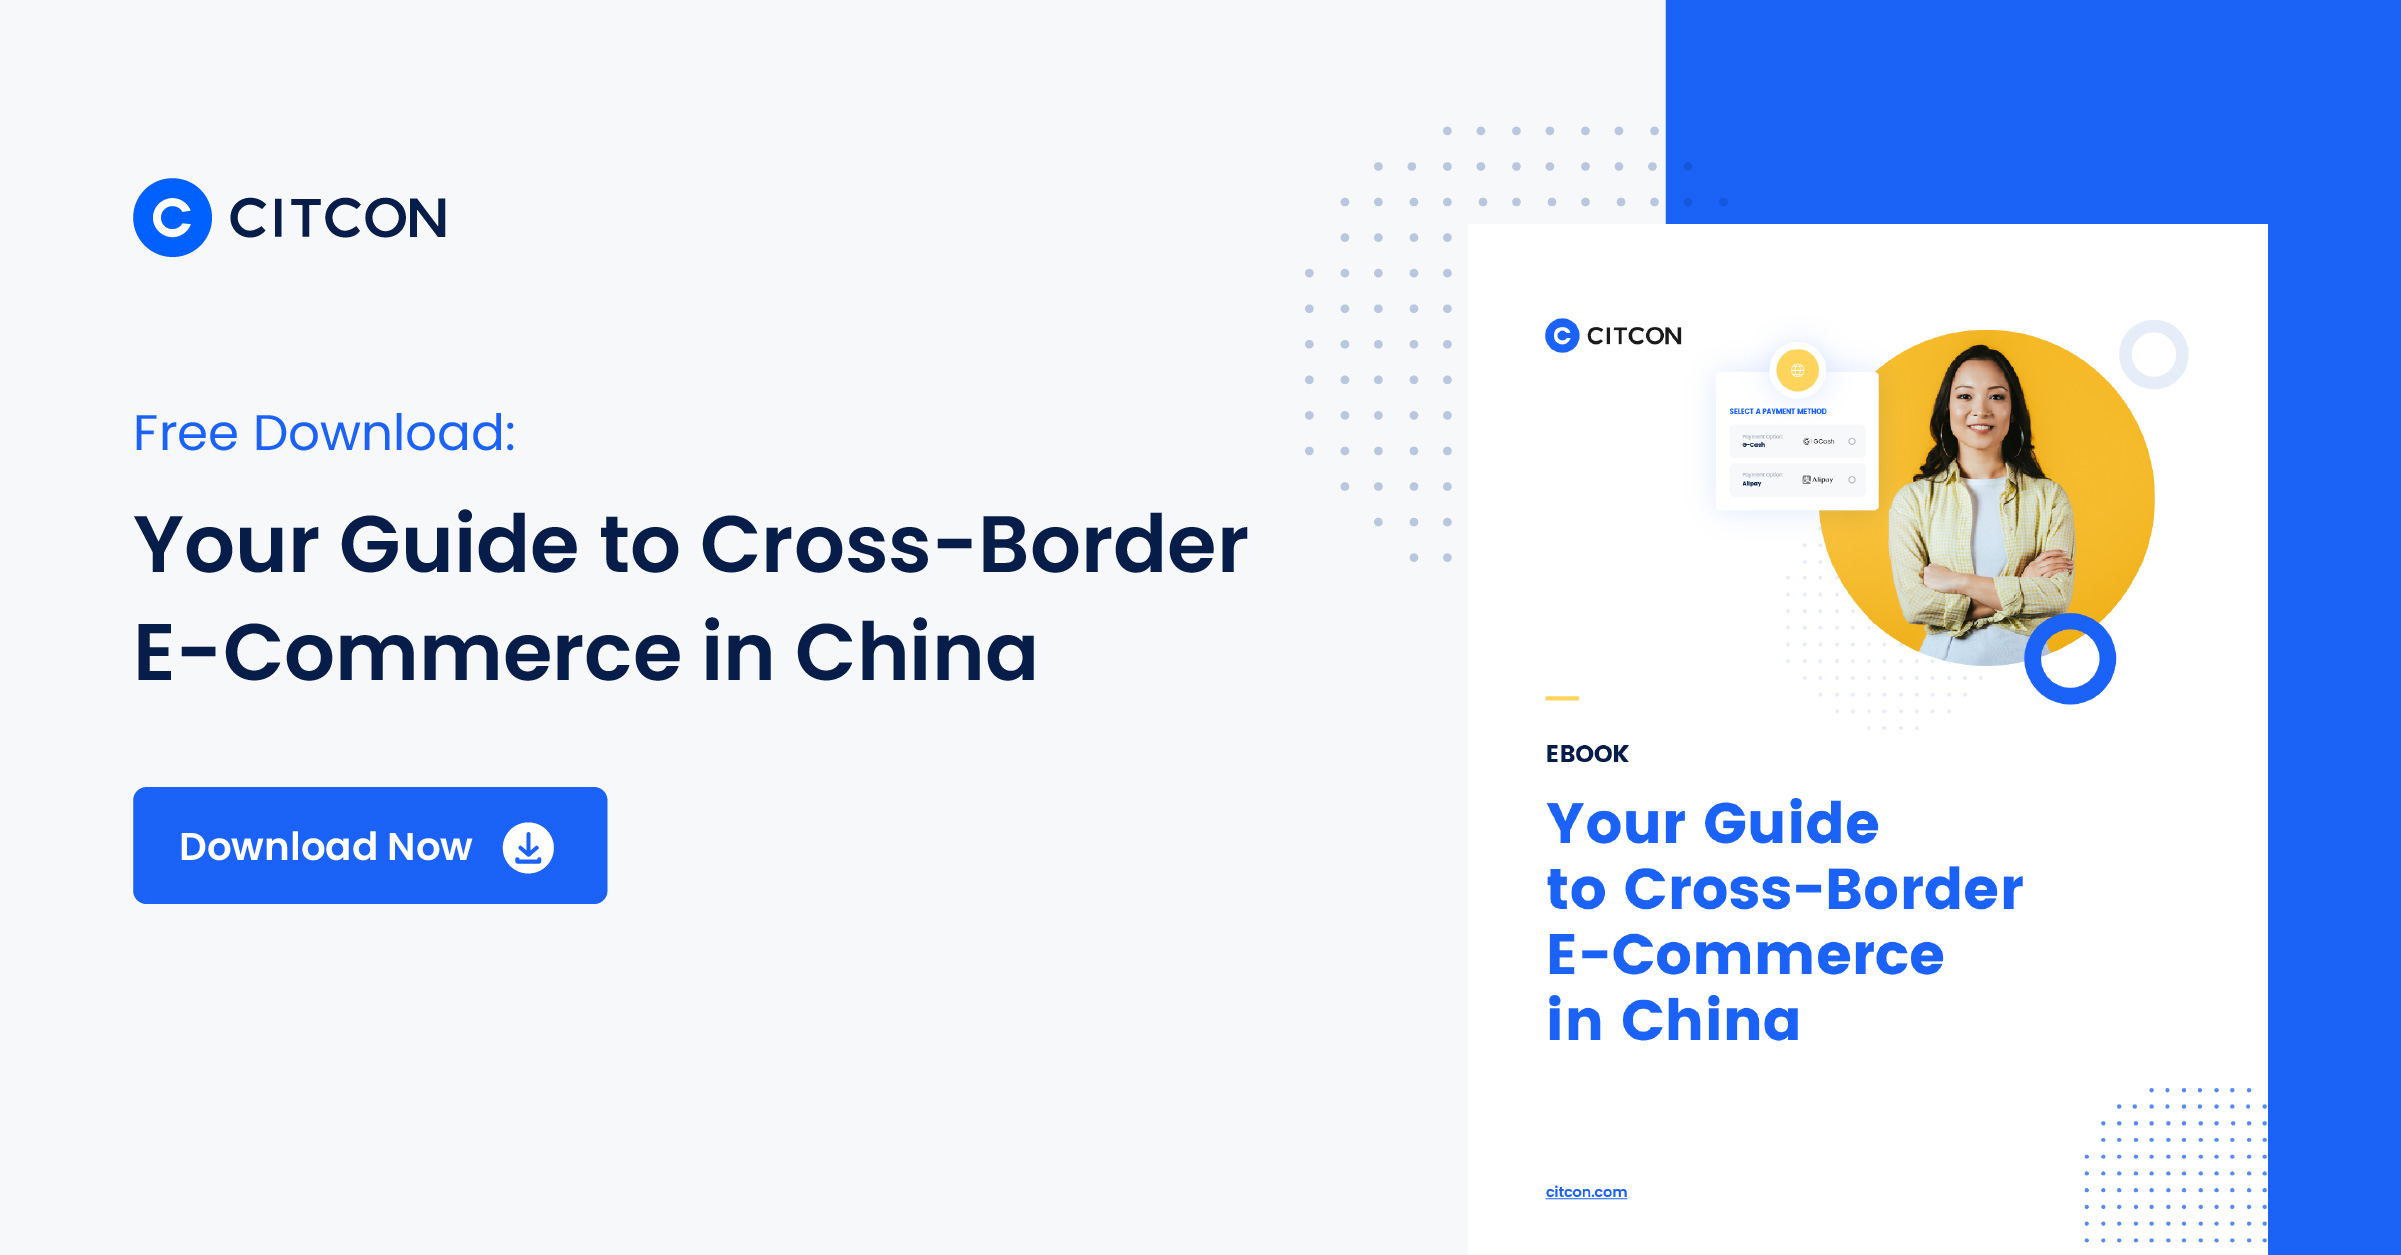 Free Download: Your Guide to Cross-Border E-Commerce in China - Download Now